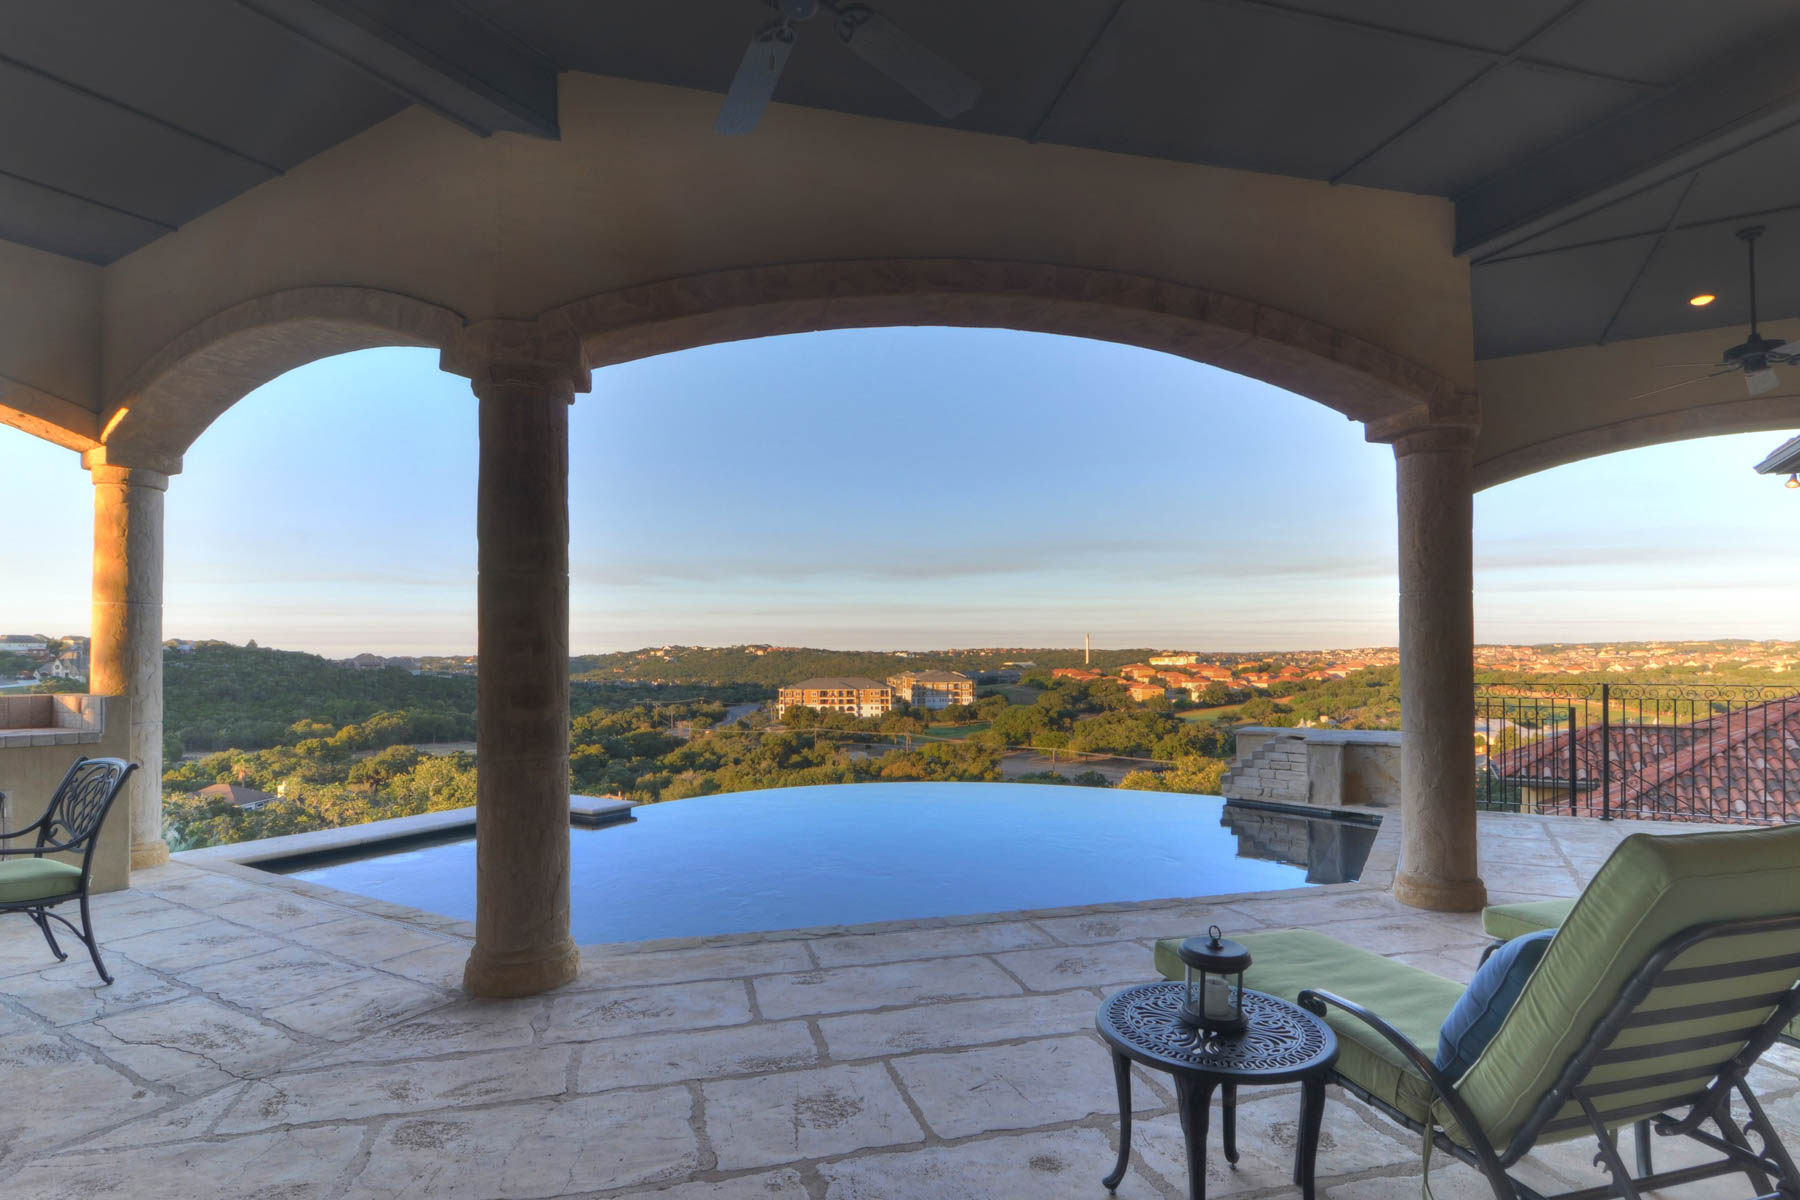 Single Family Home for Sale at Million-Dollar Views in Summerglen 24803 Parview Cir San Antonio, Texas 78260 United States